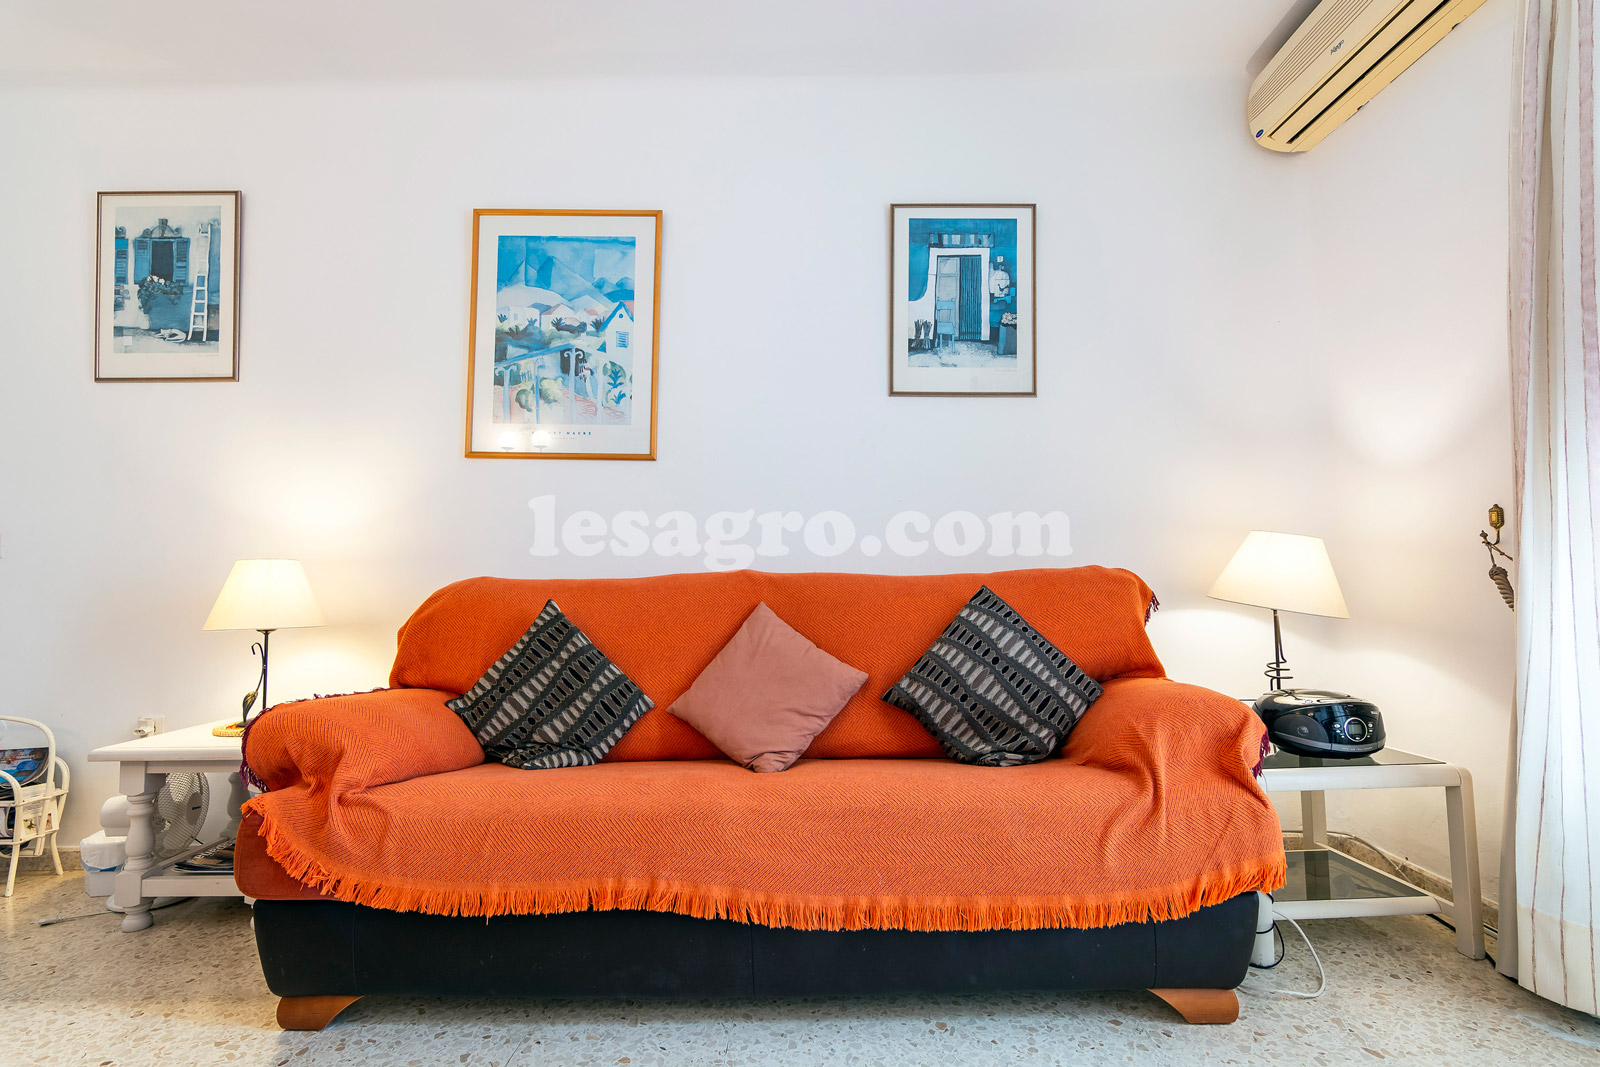 Bed 2 for sale apartment in oasis capistrano